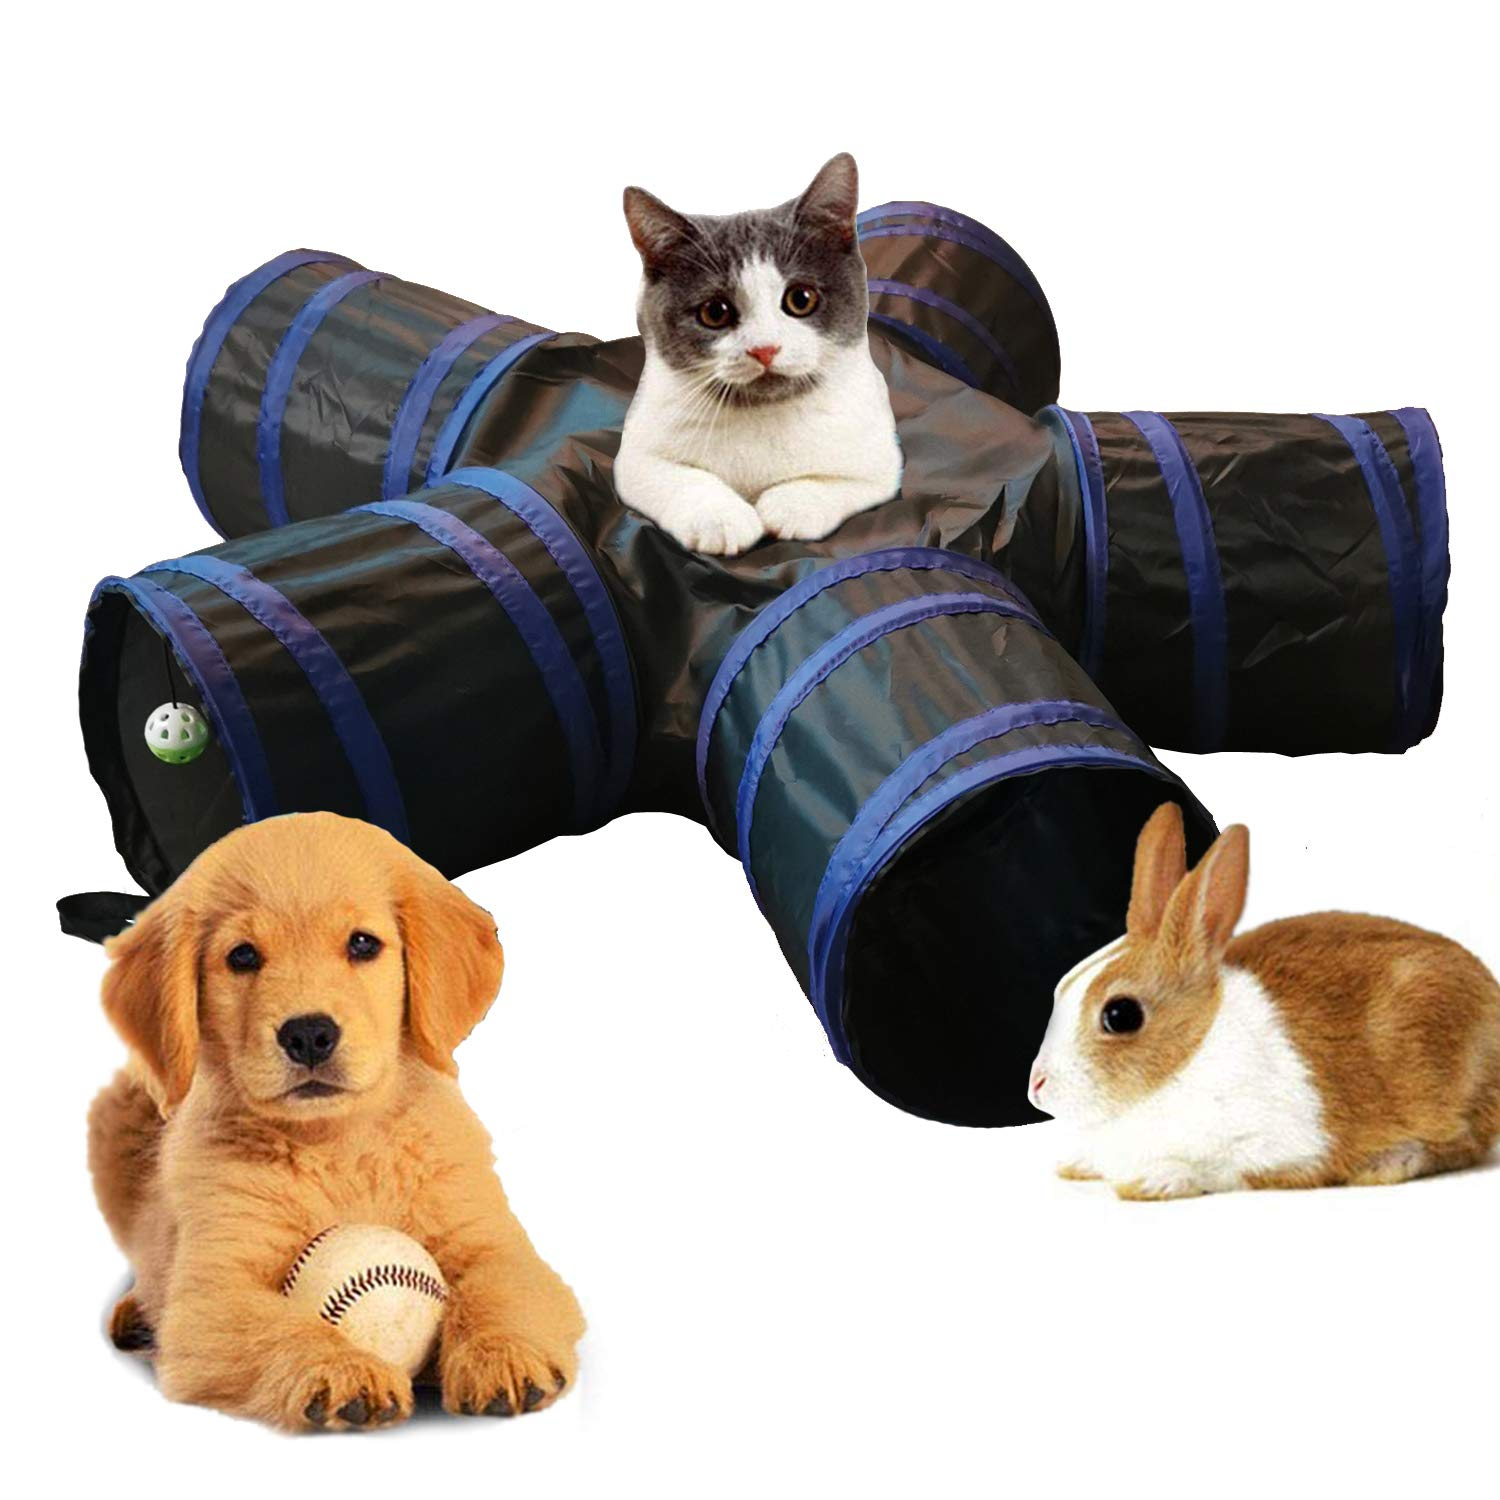 Aolan Cat Tunnel 5 Way Tunnels Extensible Collapsible Cat Play Tunnel Toy Maze Cat House with Pompon and Bells for Cat Puppy Kitten Rabbit by Aolan